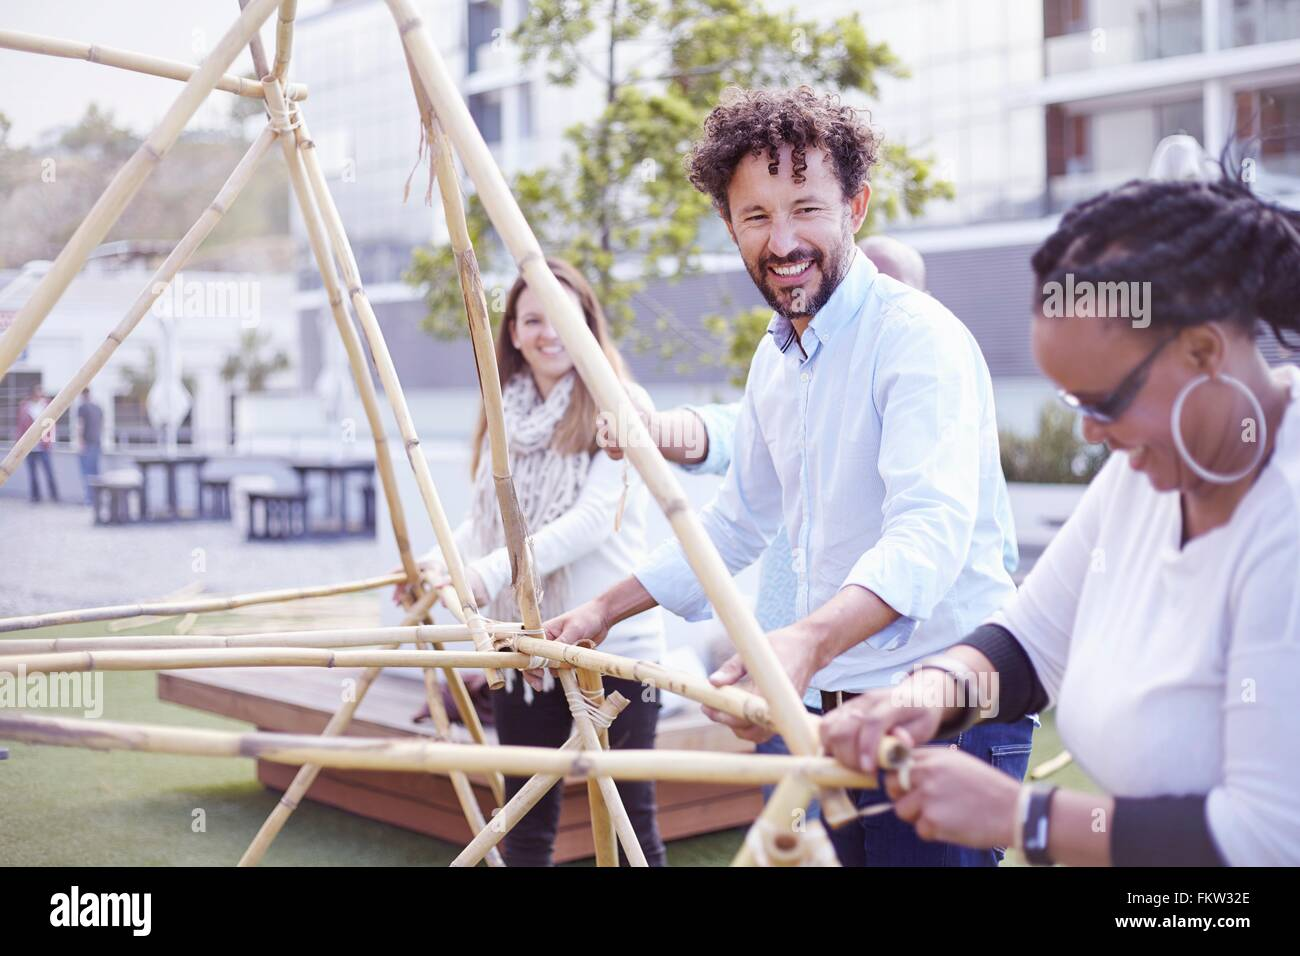 Colleagues in team building task building wooden structure smiling - Stock Image